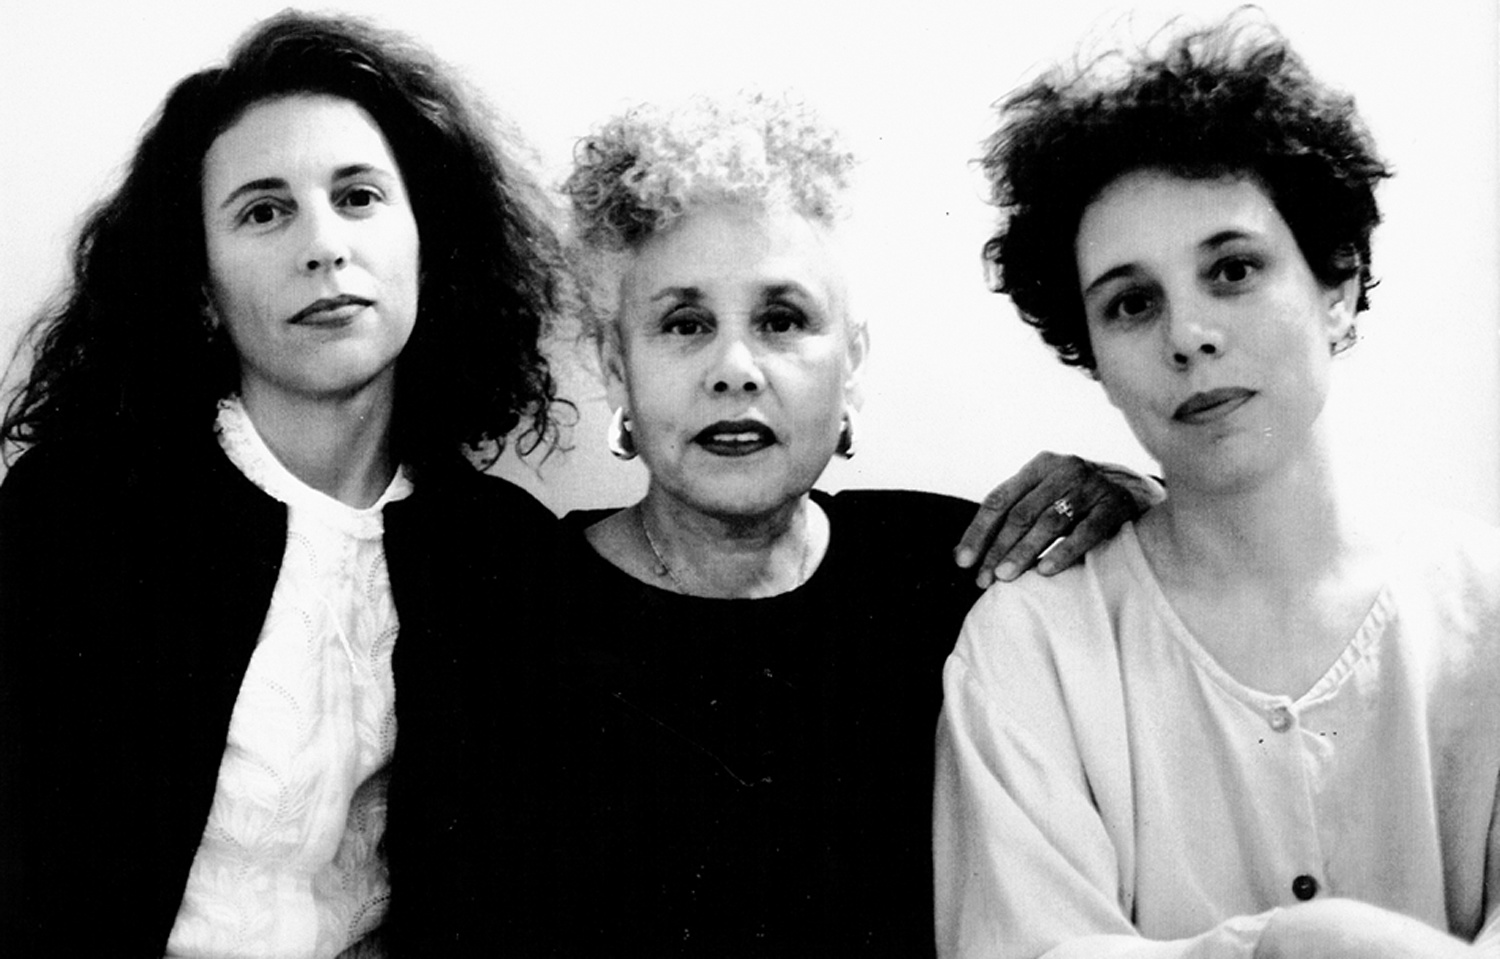 Lezley, Betye + Alison (1995)  Photo courtesy of Tracye Saar